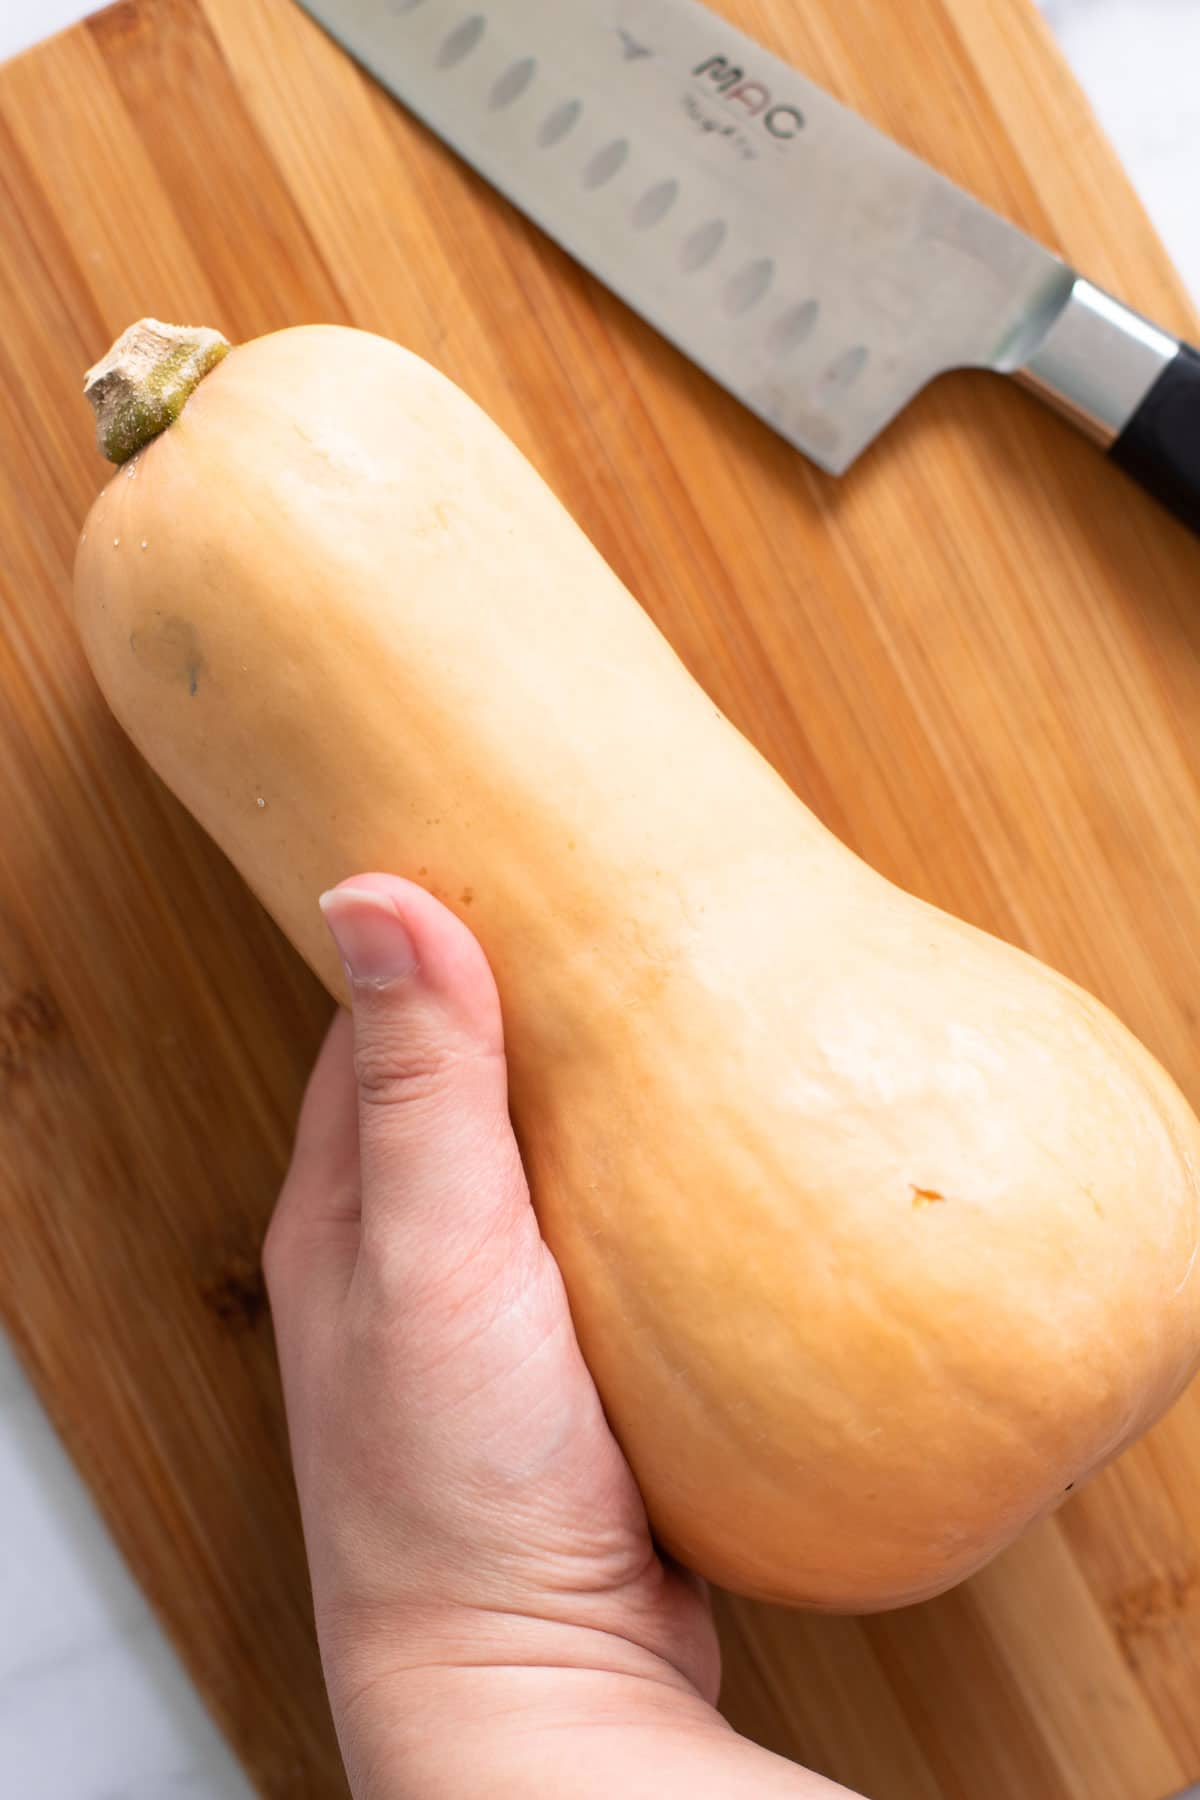 A whole butternut squash waiting to be cut up.